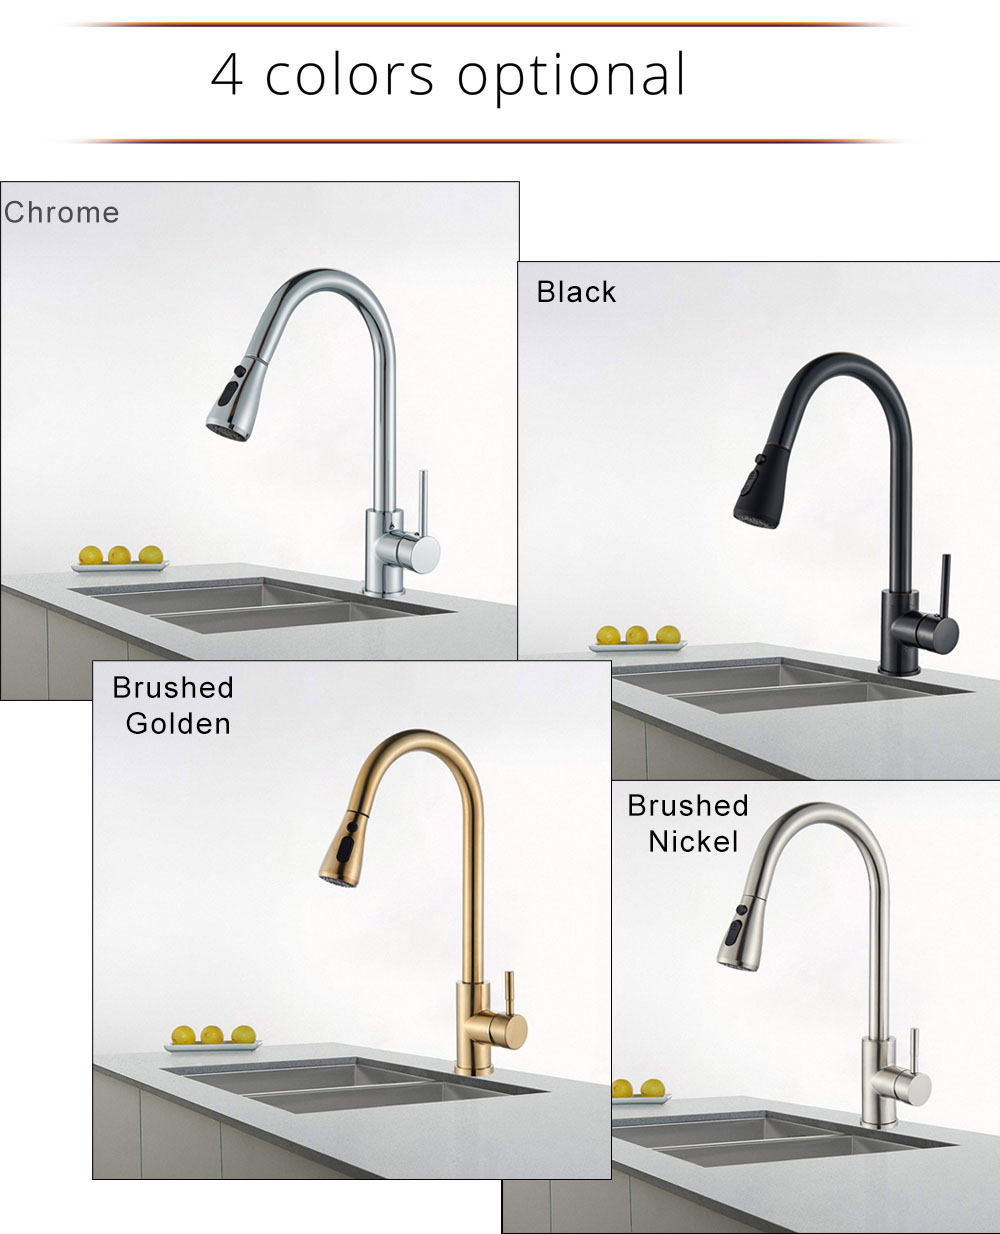 H499d12c726c741e1a6daf8acb78d1250e Rozin Brushed Nickel Kitchen Faucet Single Hole Pull Out Spout Kitchen Sink Mixer Tap Stream Sprayer Head Chrome/Black Mixer Tap